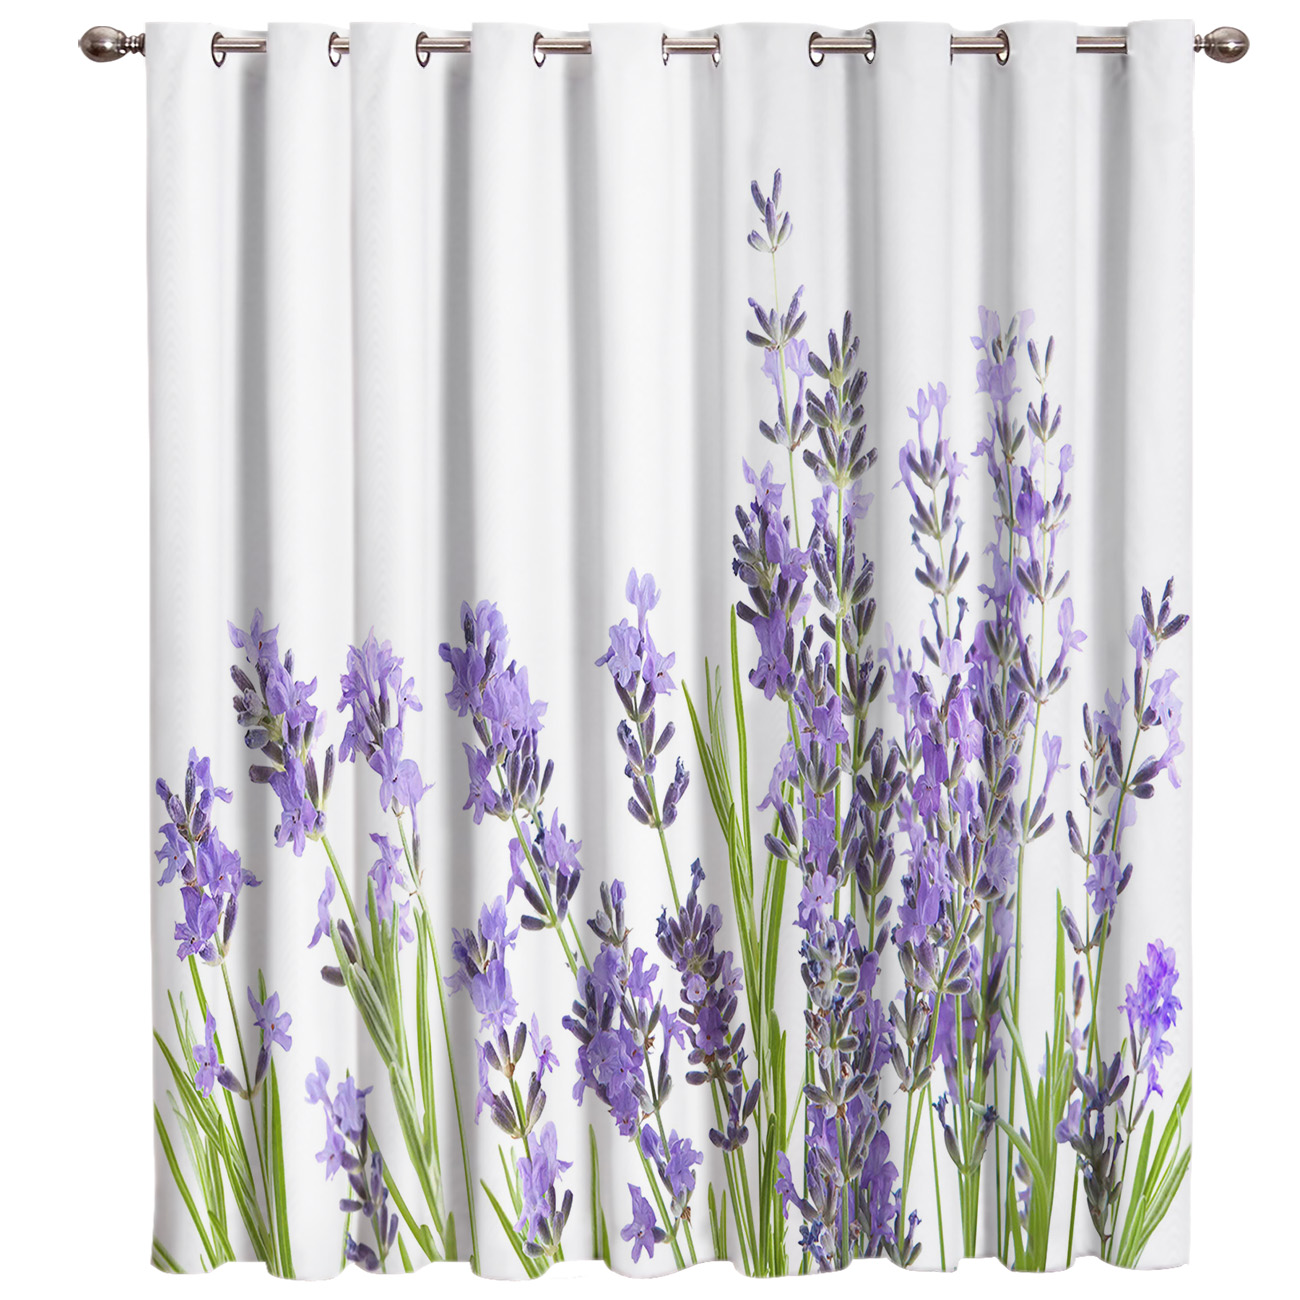 US $12.72 20% OFF|Purple Lavender Window Treatments Curtains Valance Window  Curtains Dark Blackout Bedroom Indoor Fabric Decor Kids Window Curtain-in  ...